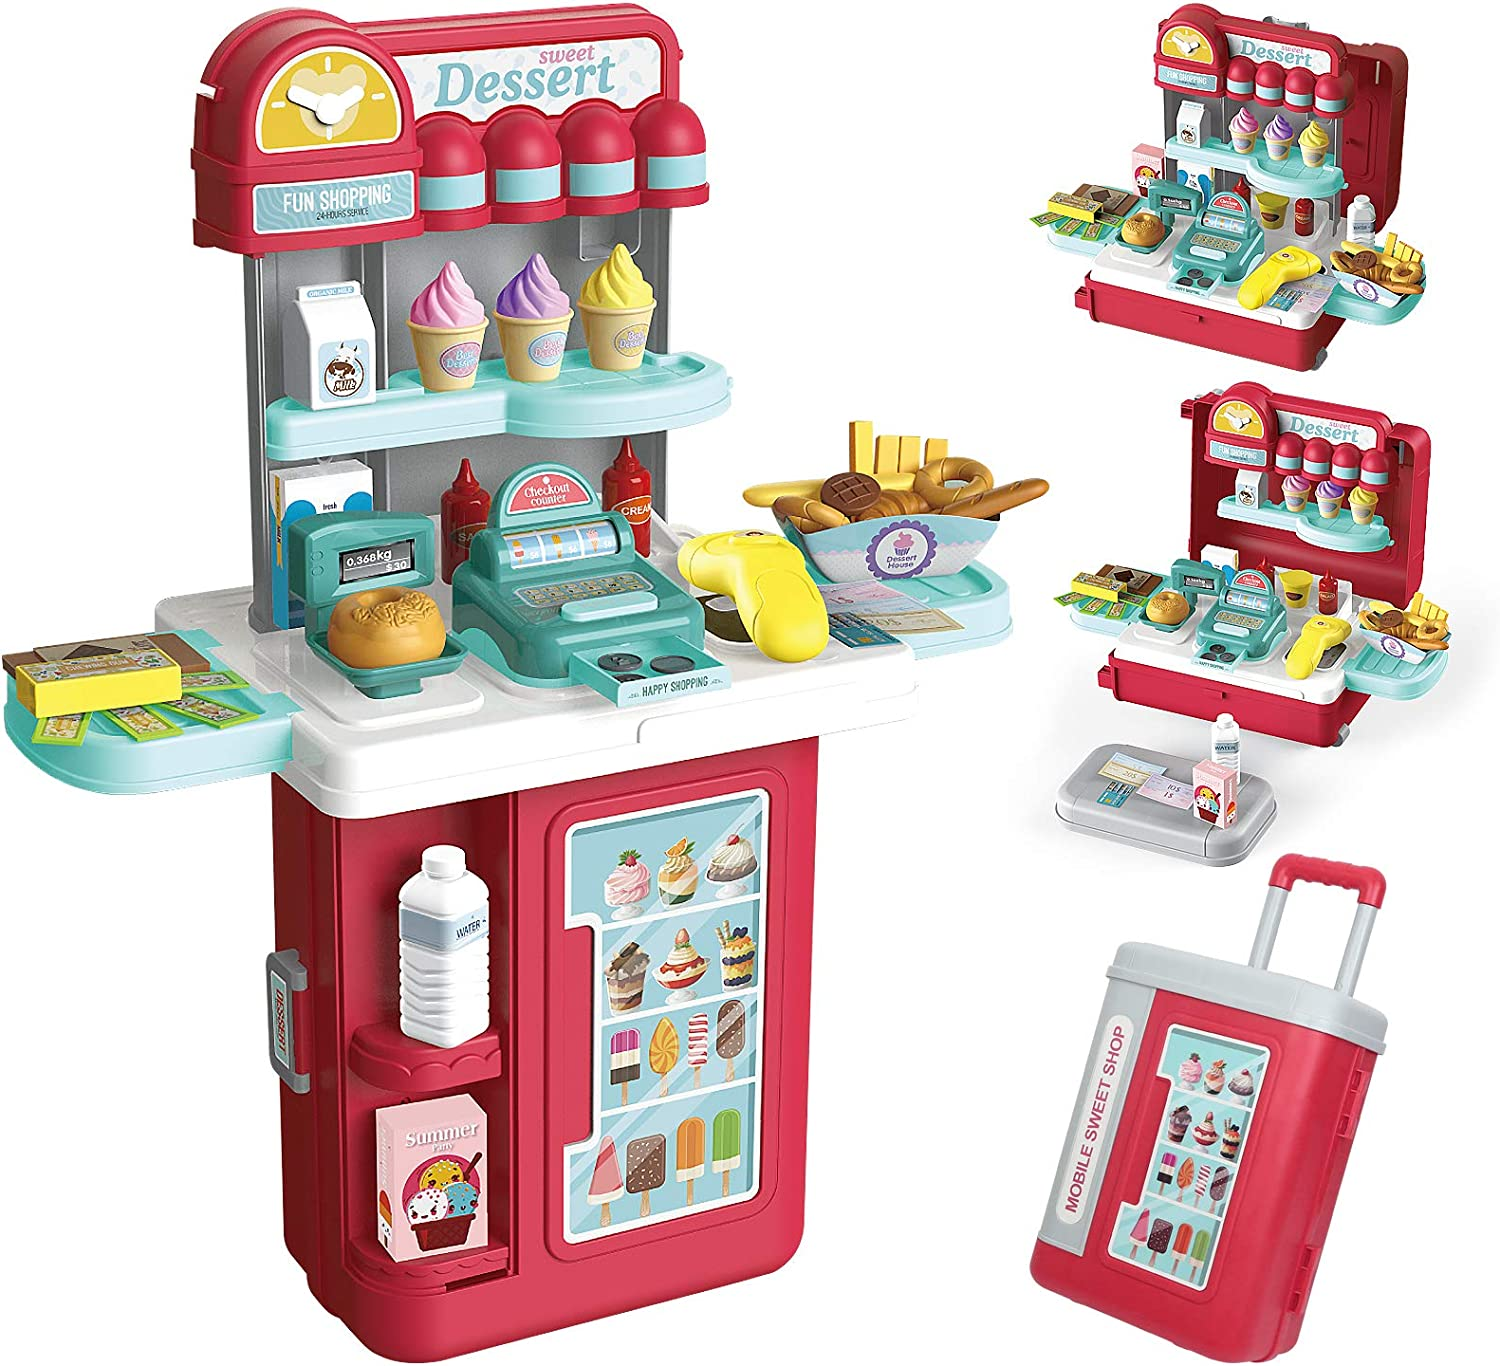 GRESAHOM Pretend Playset for Kids,4-in-1 Cash Register Convertible Suitcase Role Play Set with 54 PCS Accessories,Scanner Credit Card Play Food Money Sweet Treats Ice Cream Dessert for Boys Girls